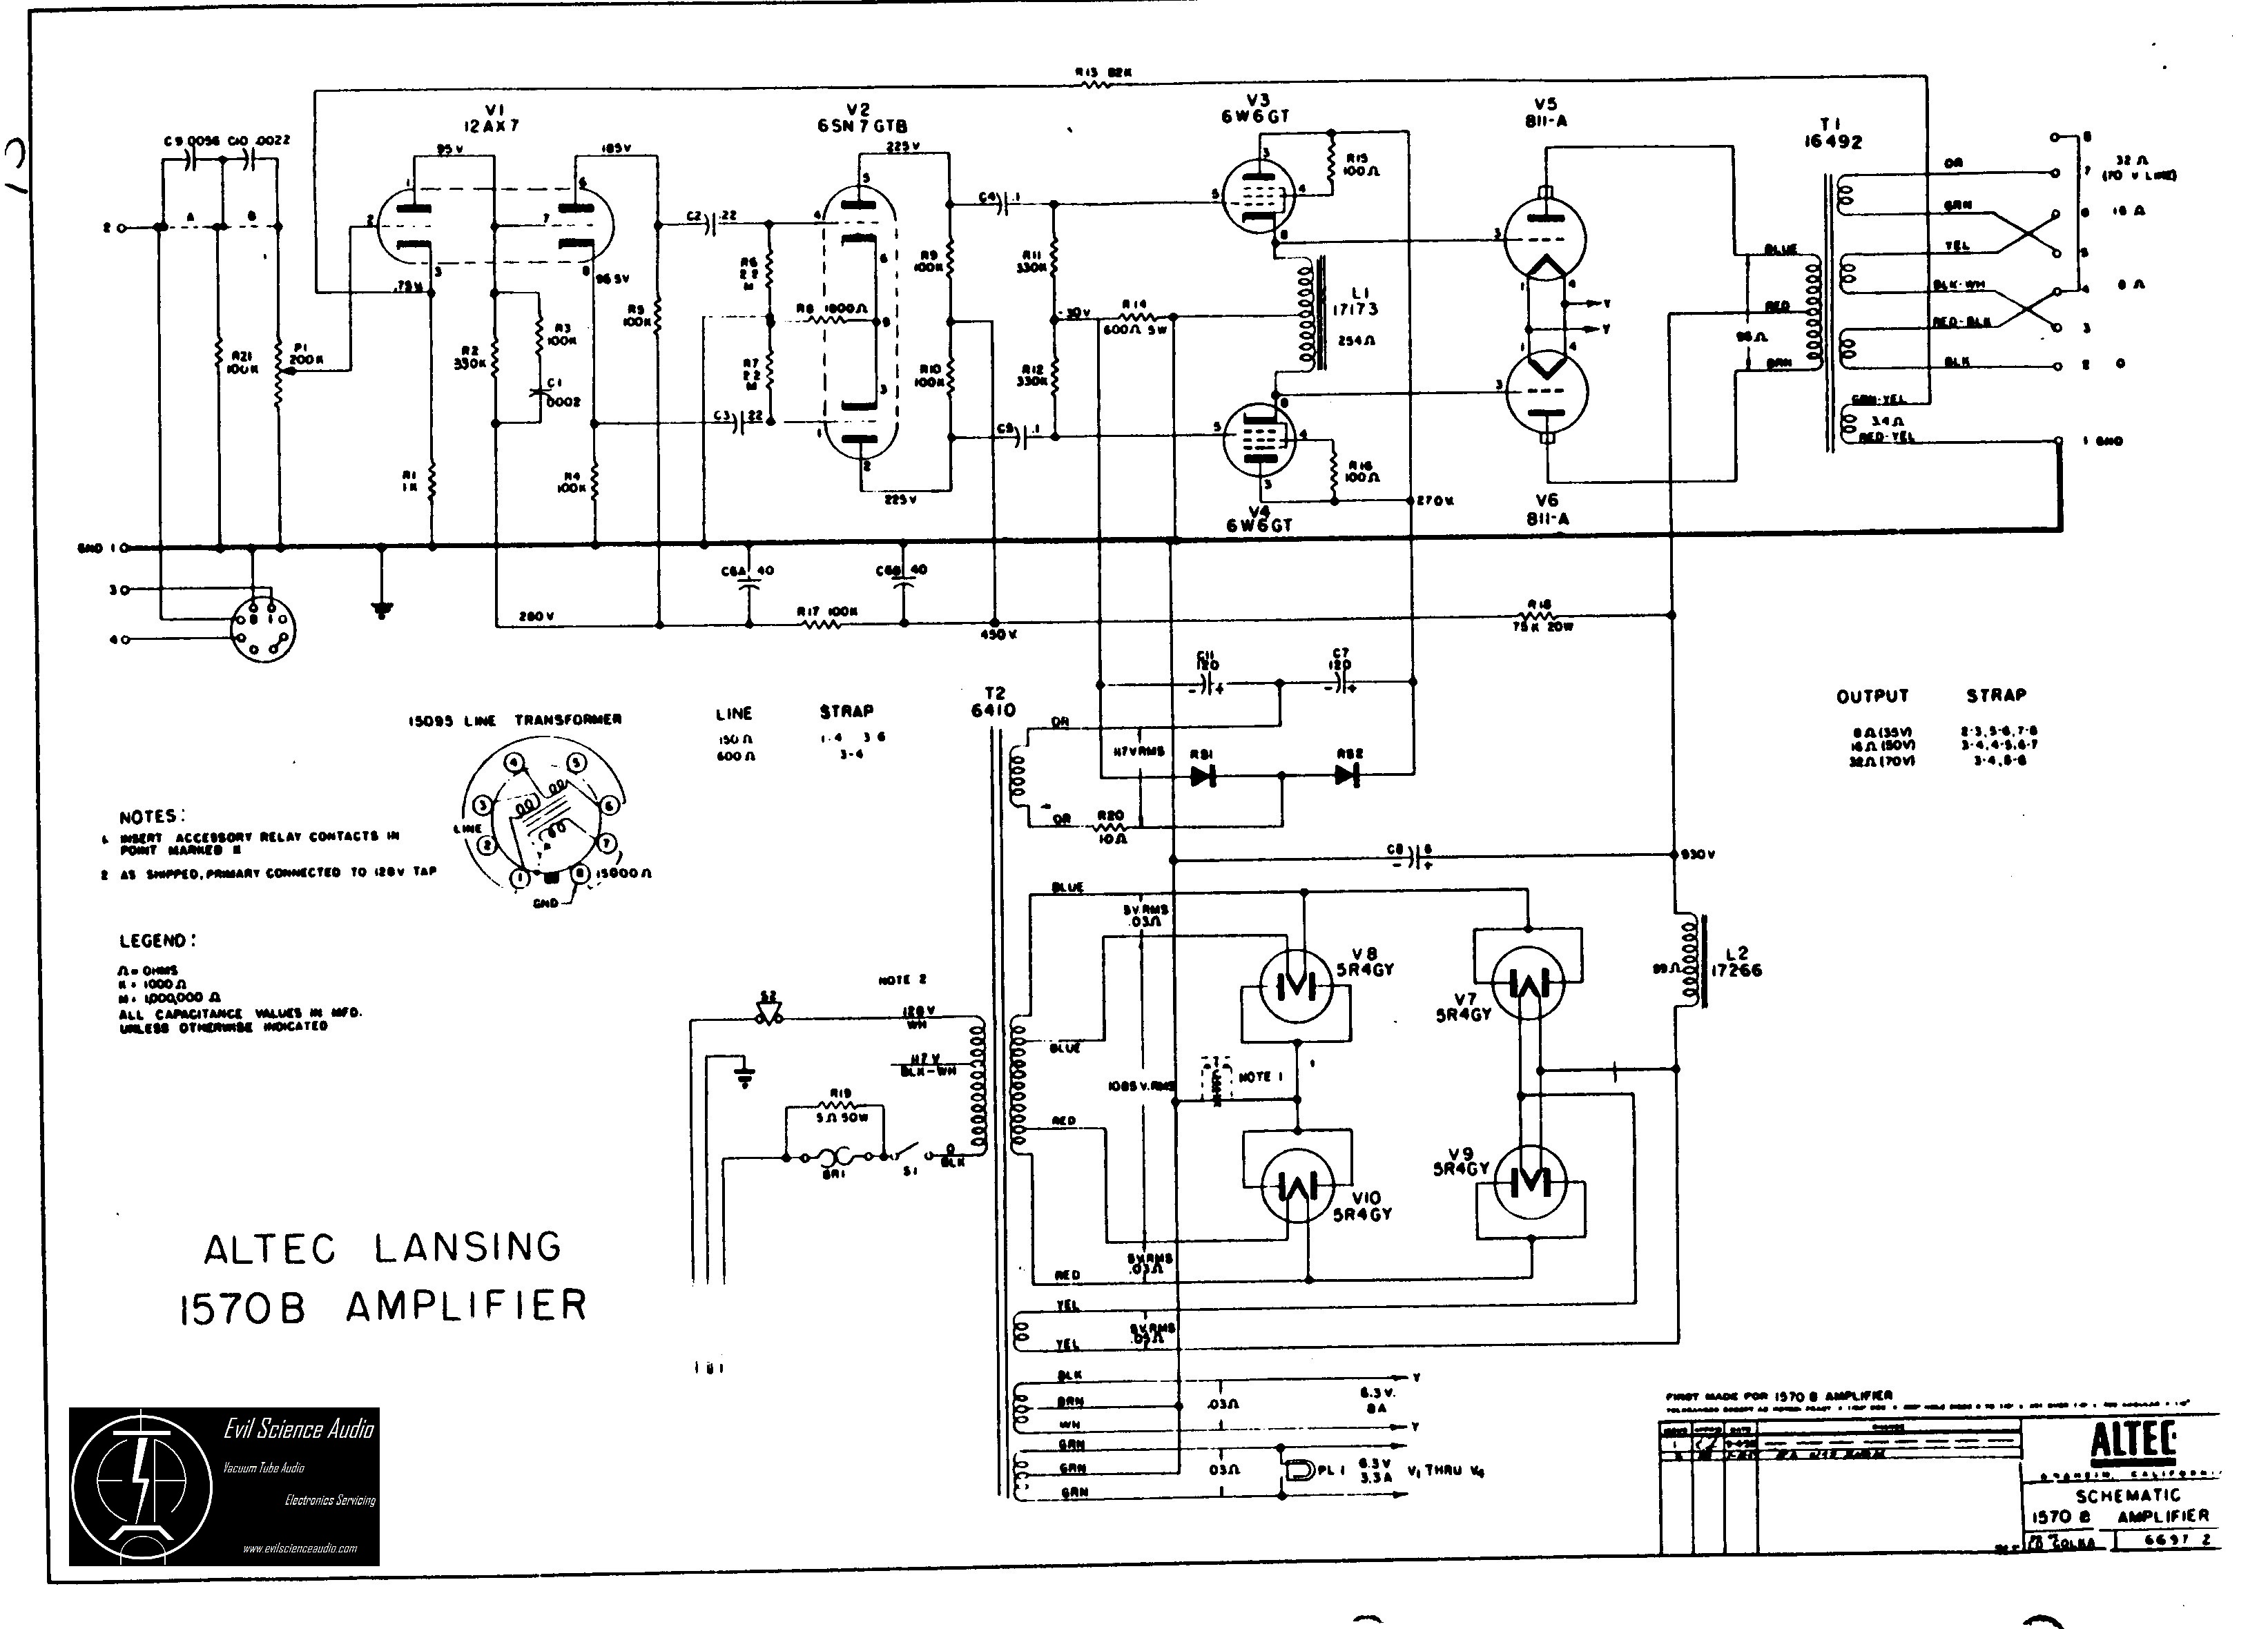 citroen speakers wiring diagram altec lansing computer speakers wiring diagram altec lansing 7 wiring diagram pinout | wiring library